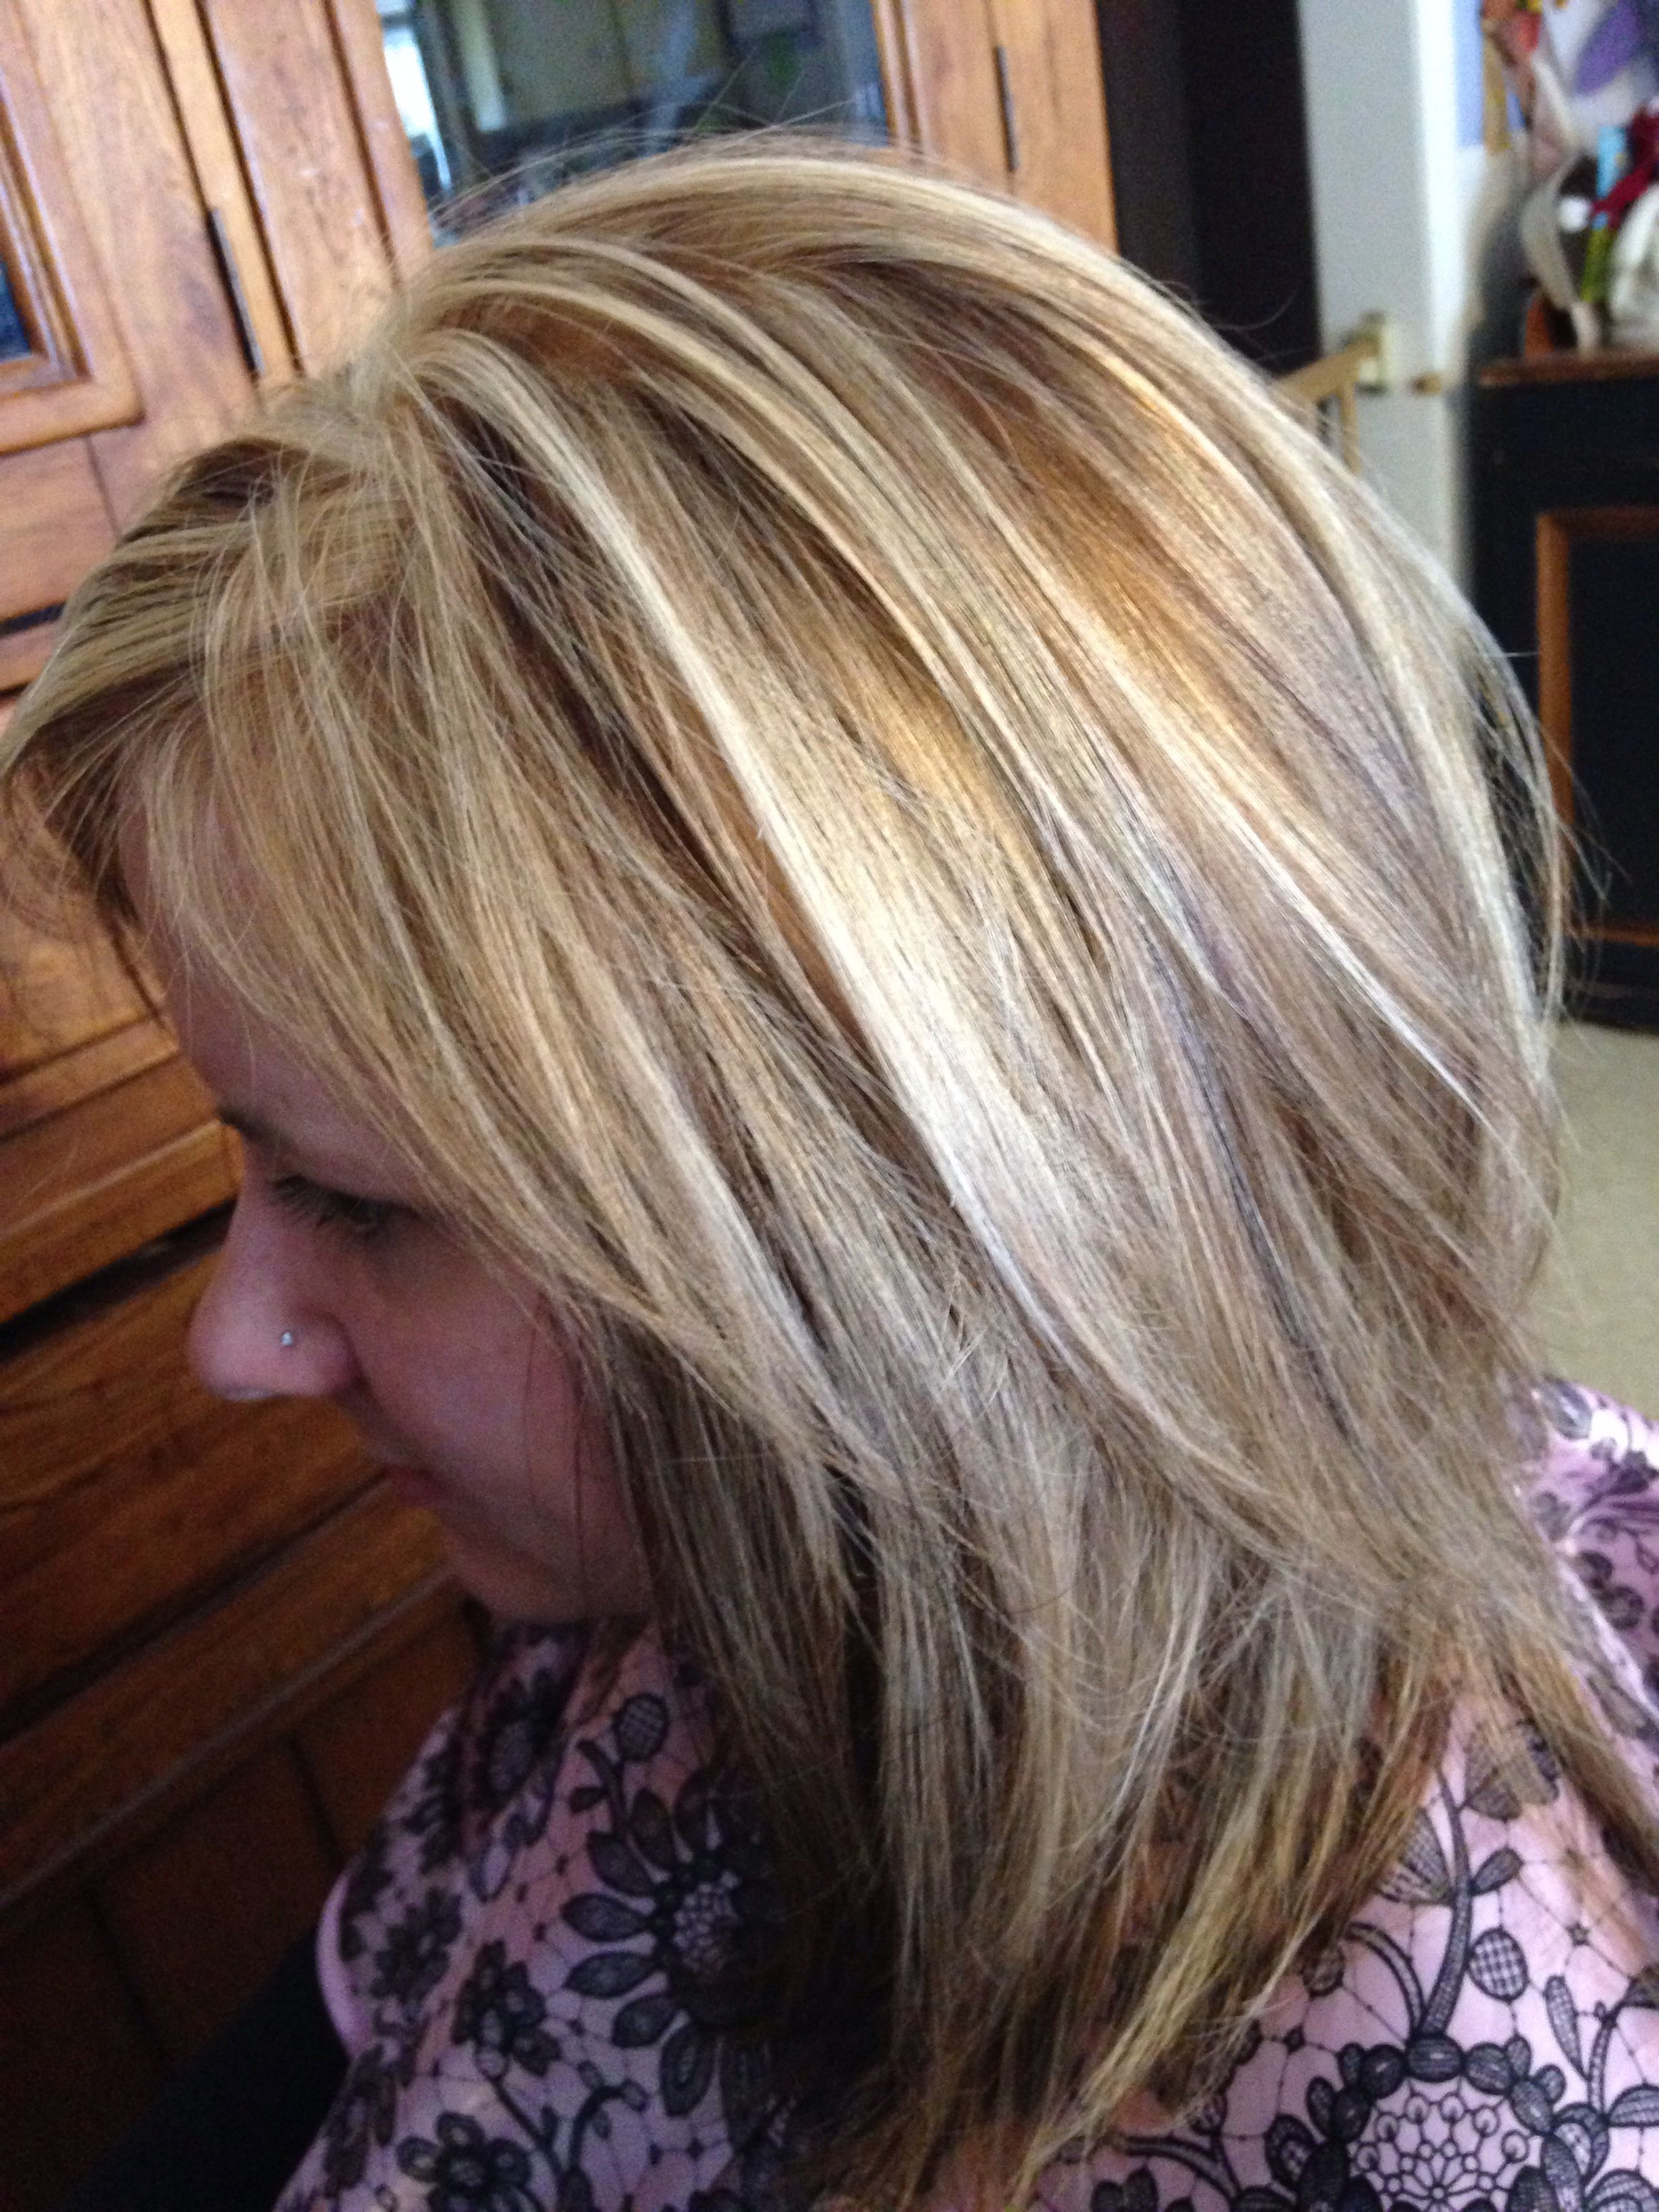 3 Color Blonde And Brown Hair Foil Mom Hairstyles Hair Foils